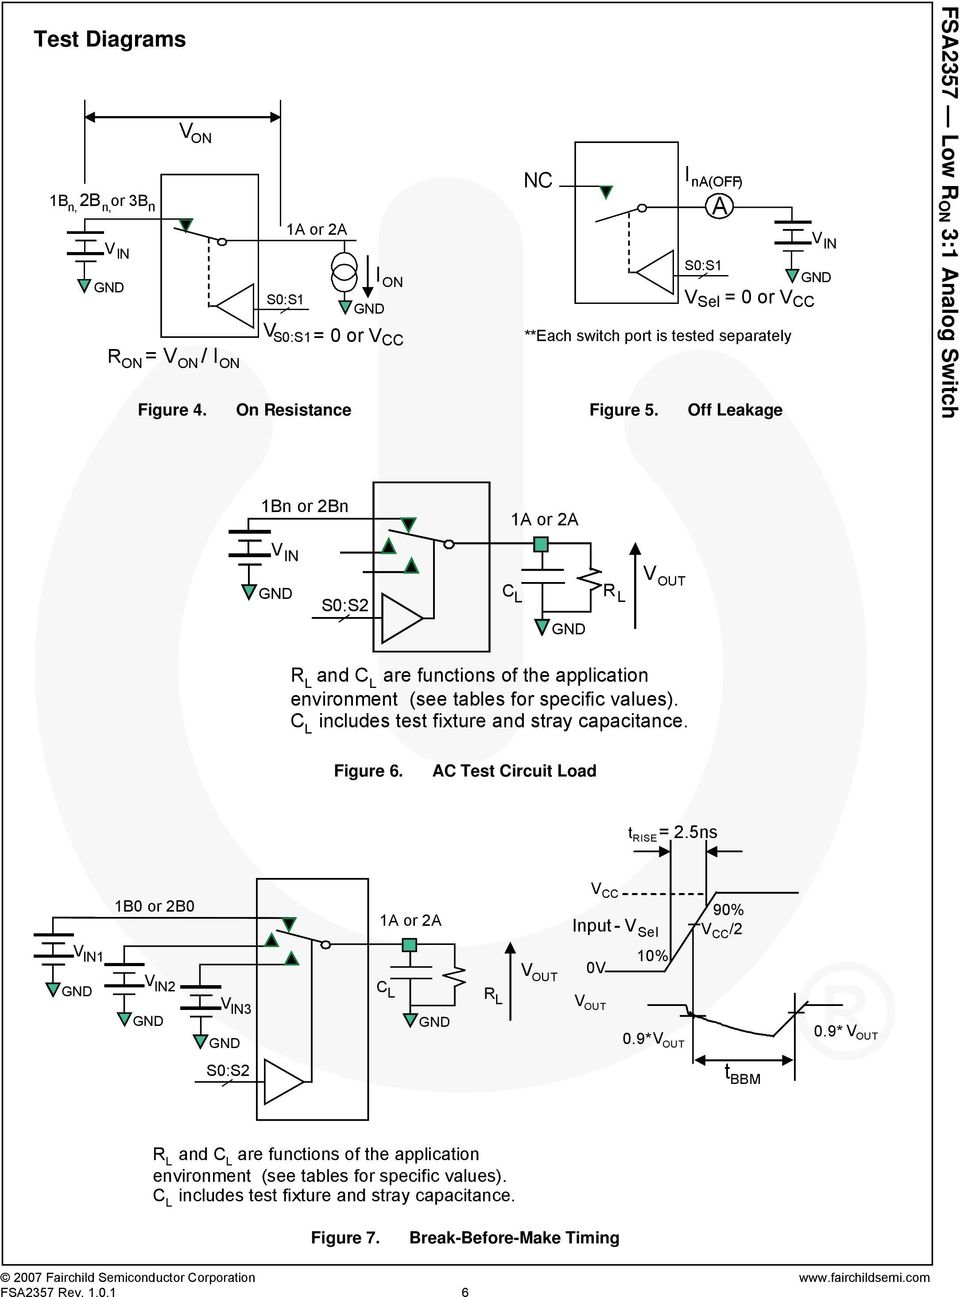 C L includes test fixture and stray capacitance. L Figure 6. AC Test Circuit Load t RISE = 2.5ns 1B0 or 2B0 1A or 2A V CC Input - V Sel 90% V CC /2 V IN1 V IN2 V IN3 C L R L 0V 10% 0.